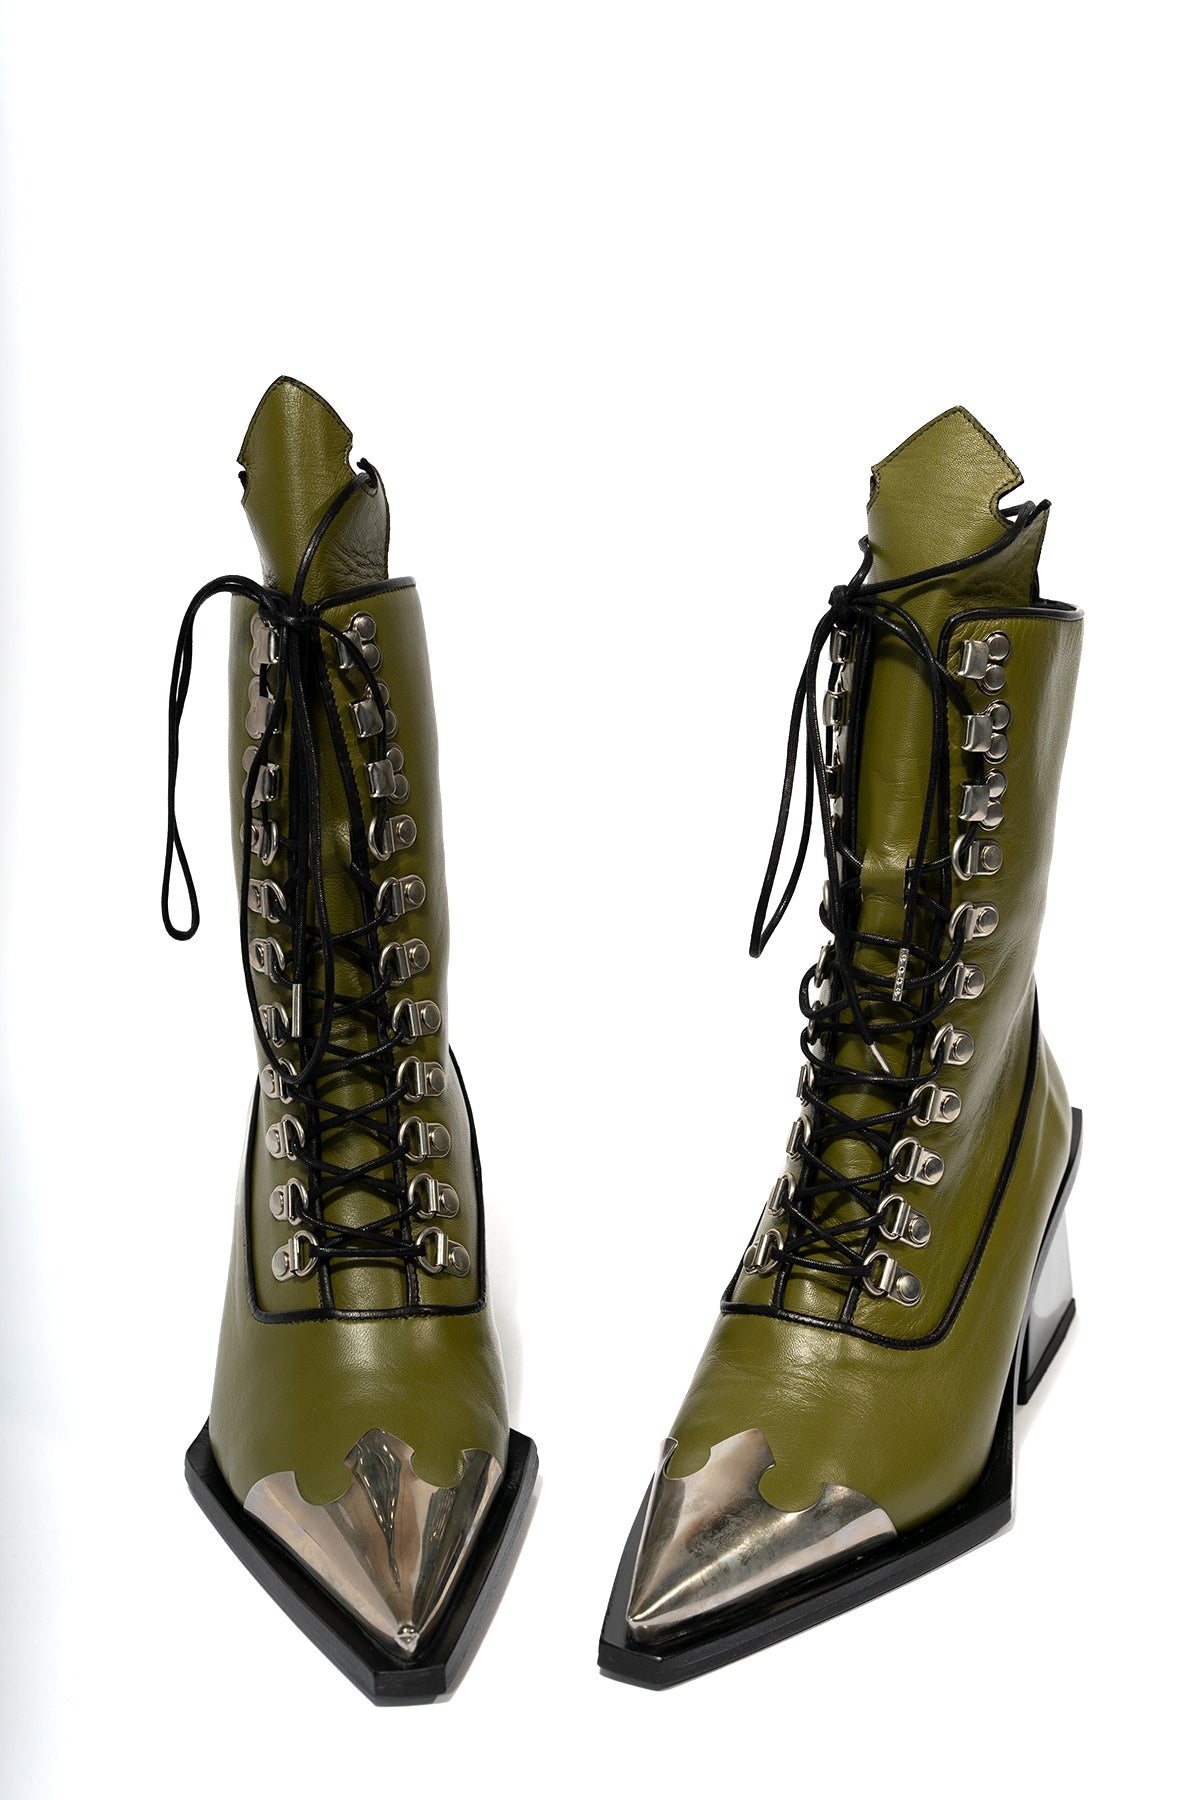 METAL TOE BOOT WITH M'A HEEL